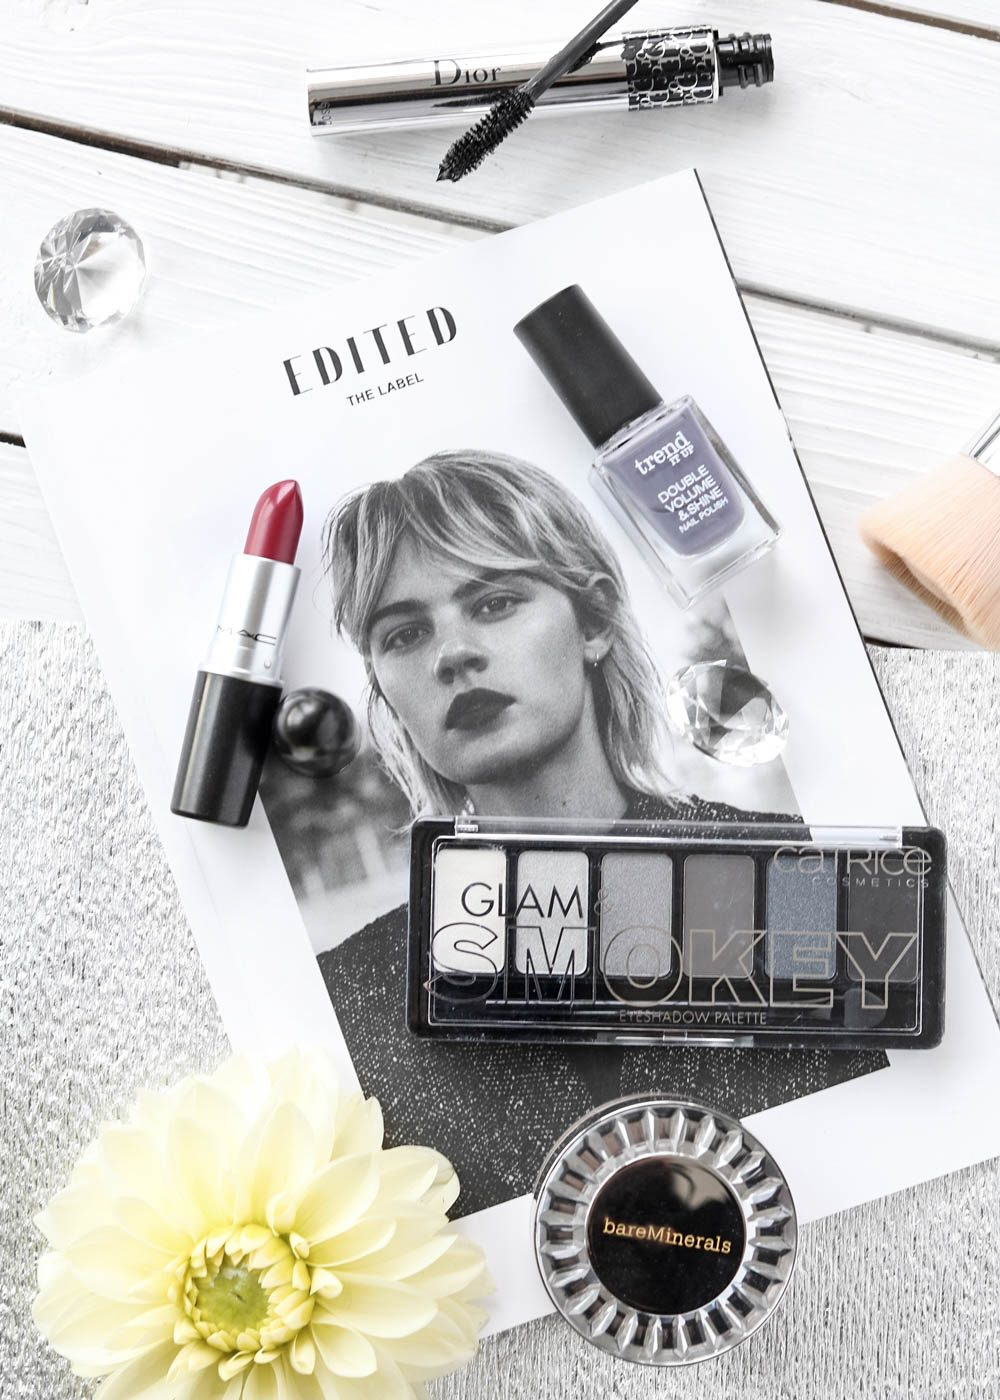 Aktuelle Beautylieblinge Mac Dior Trend It Up Lavie Deboite